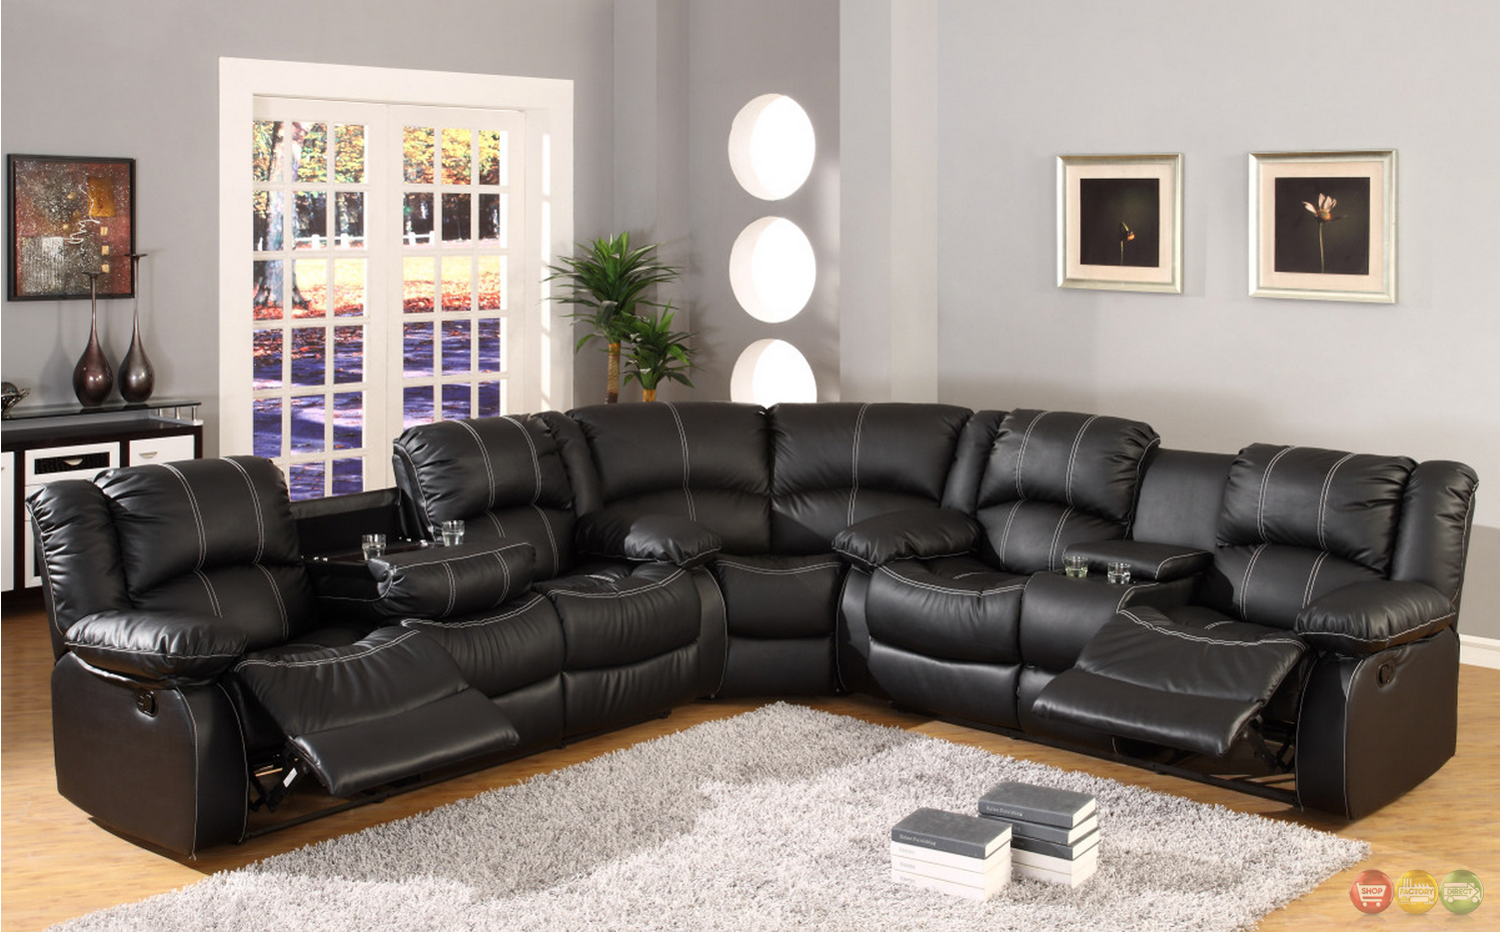 Black Faux Leather Reclining Motion Sectional Sofa W Storage